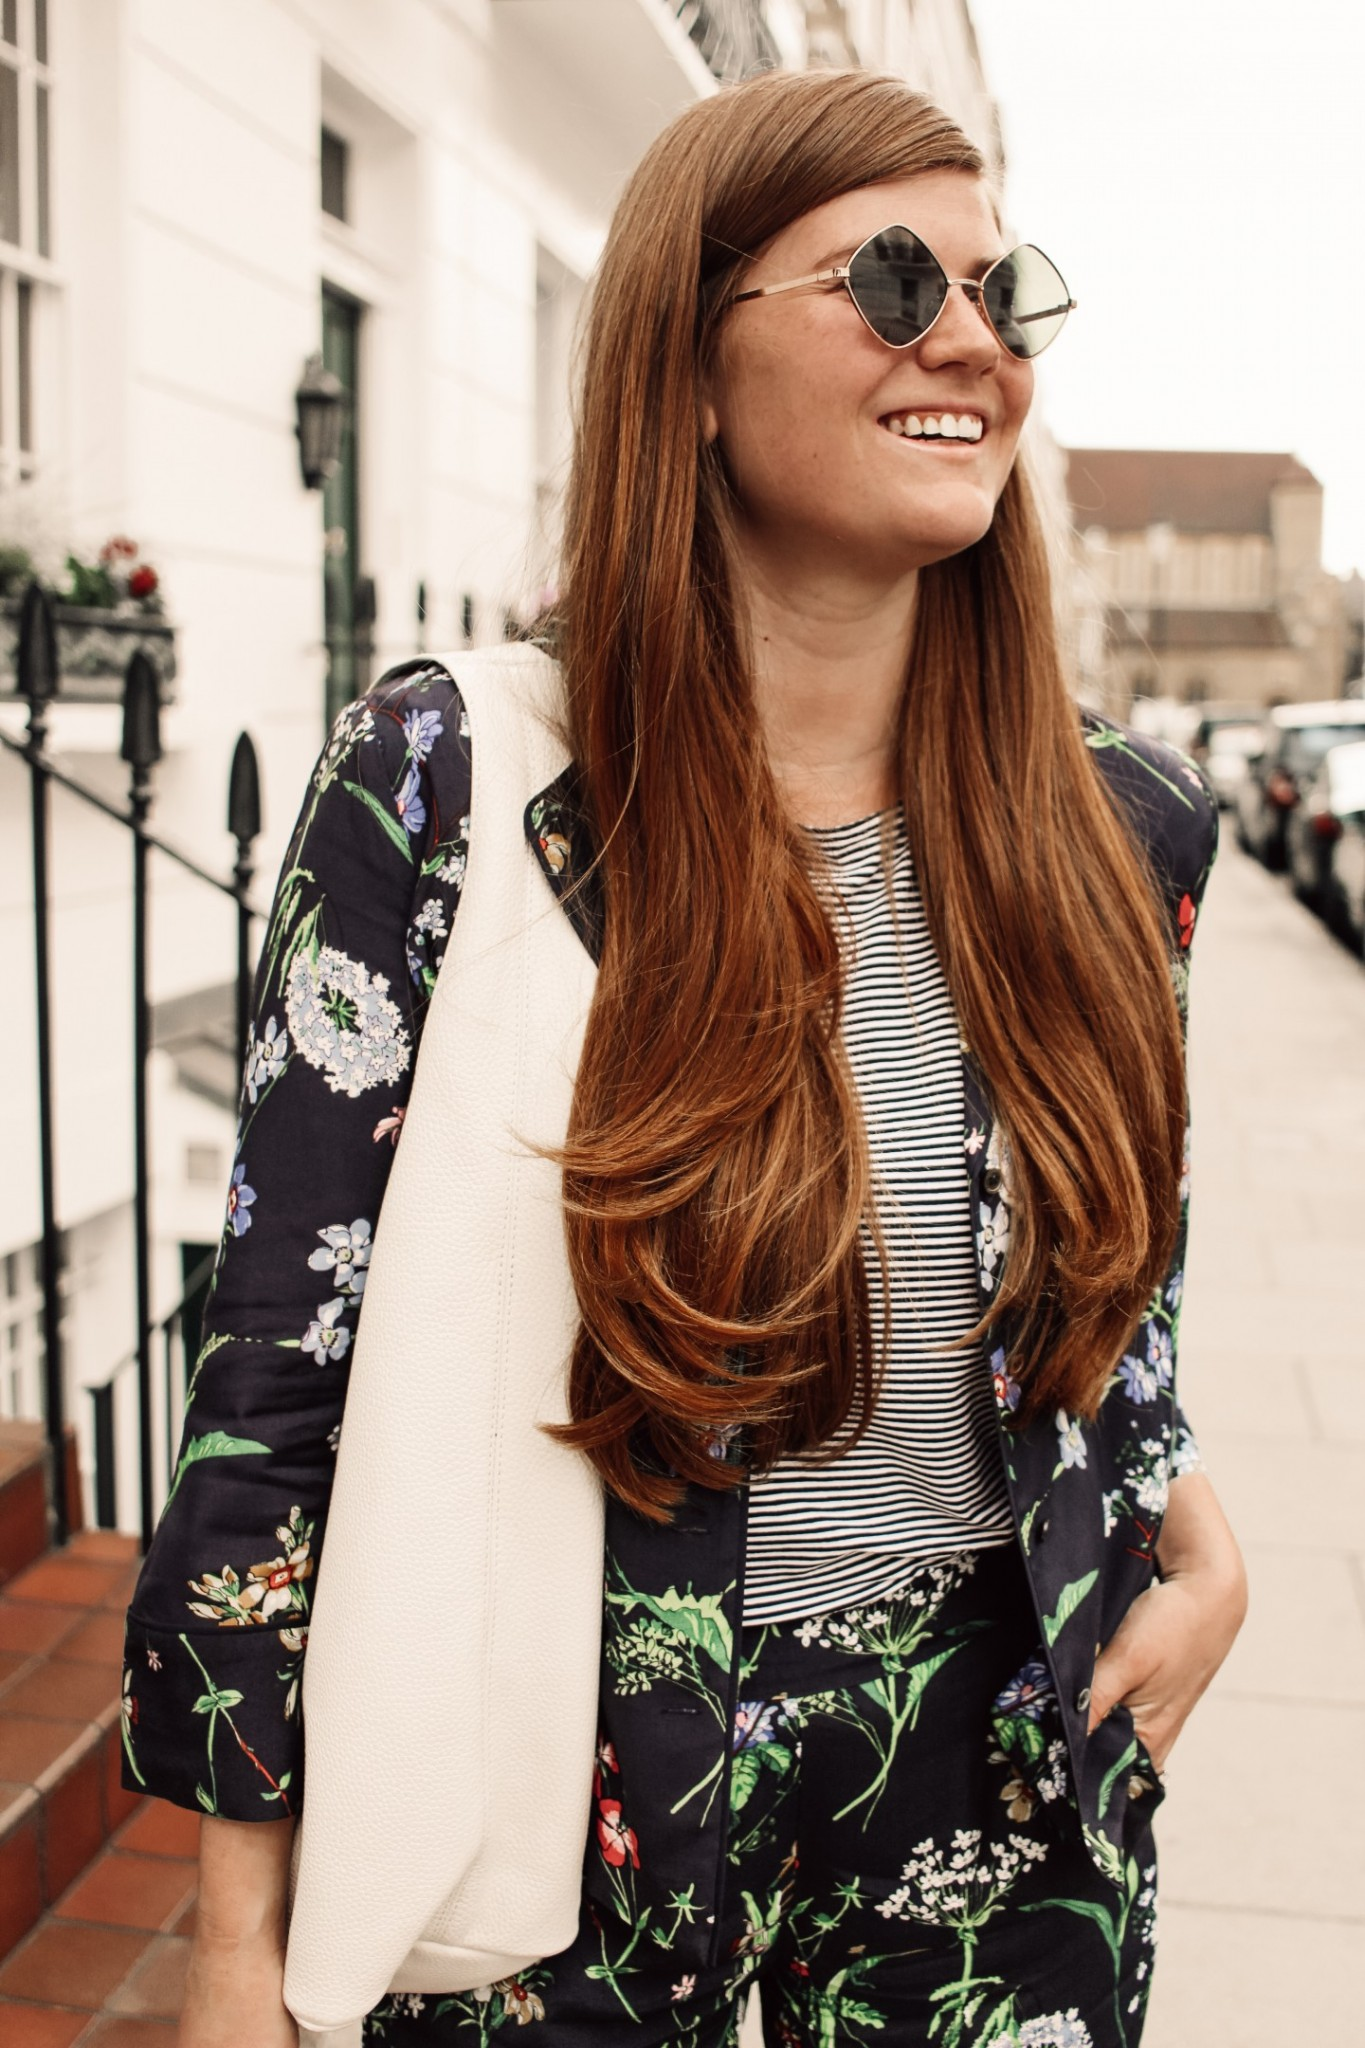 Lifestyle blogger Mollie Moore shares an outfit from Hobbs London | London Chic with Hobbs Covent Garden featured by top London fashion blog, Mollie Moore